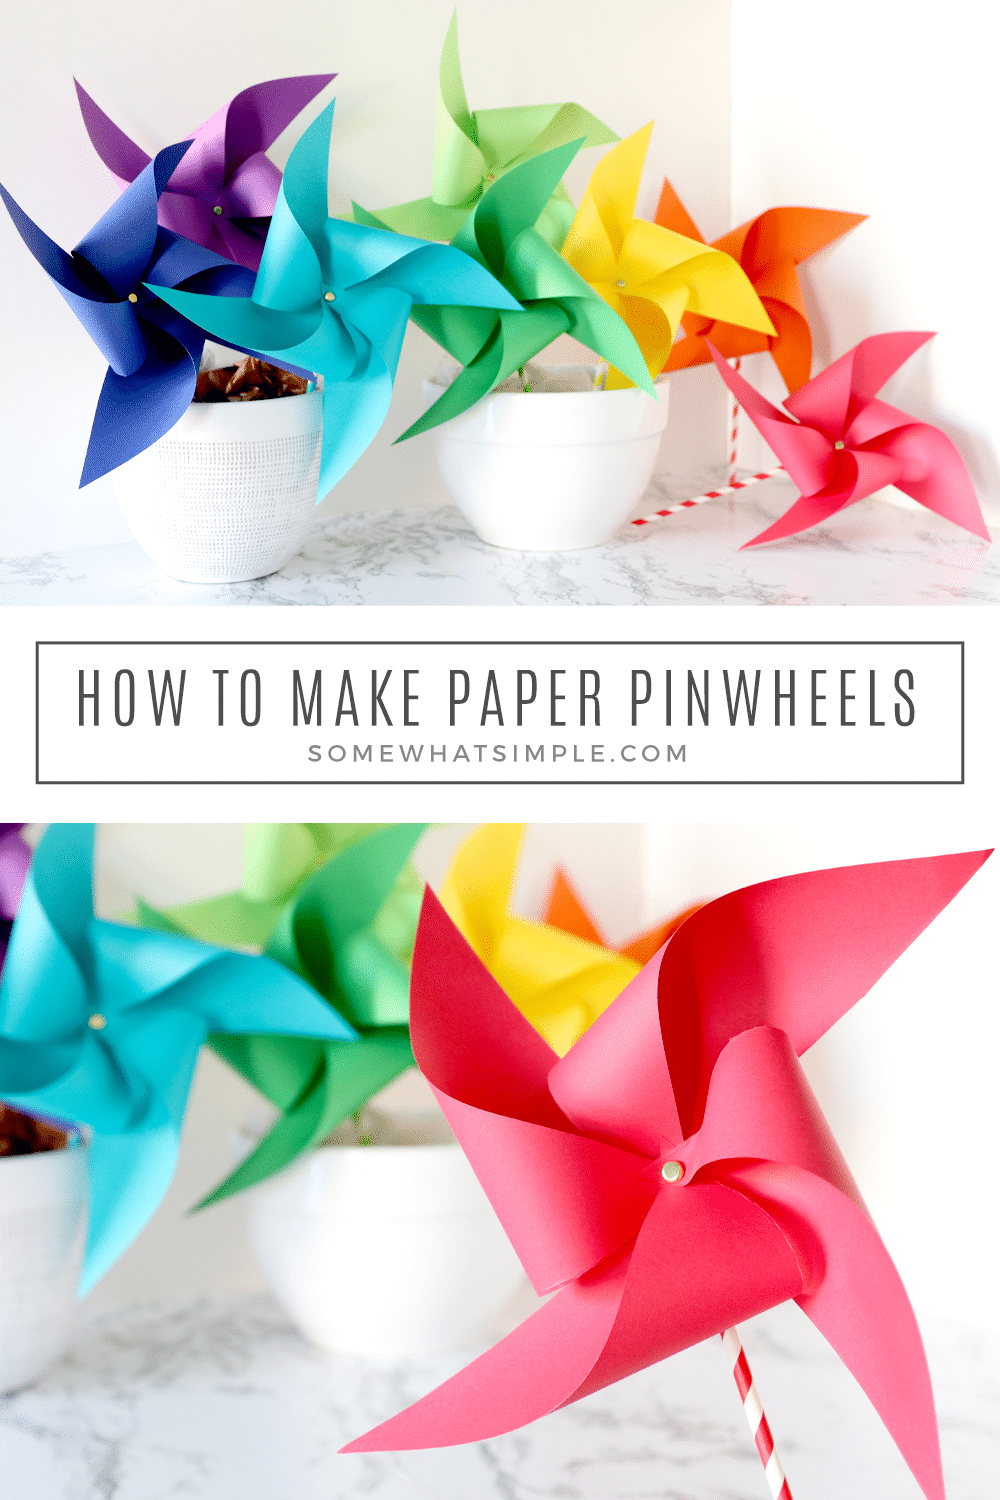 Ready for a fun craft that can be made in minutes? Here's how to make paper pinwheels for your next craft day, party or special celebration! via @somewhatsimple